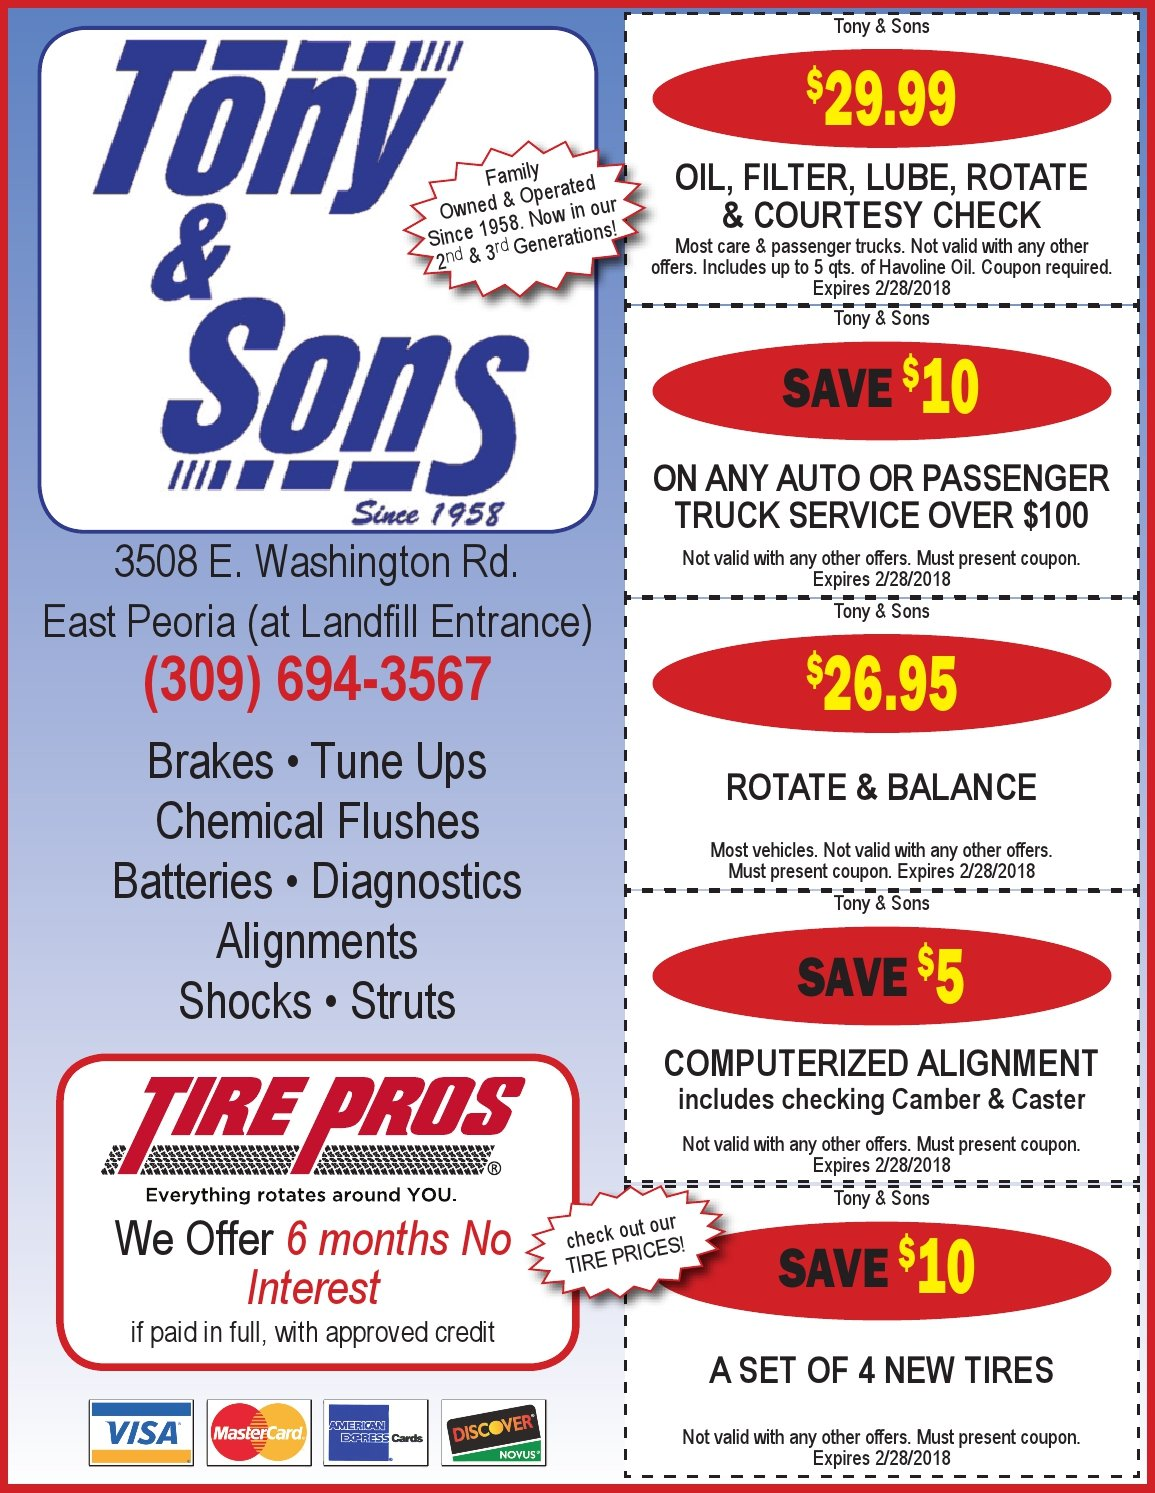 Tony and Sons auto service, tires, repairs, maintainence, rotate and balance, oil change coupons East Peoria, IL